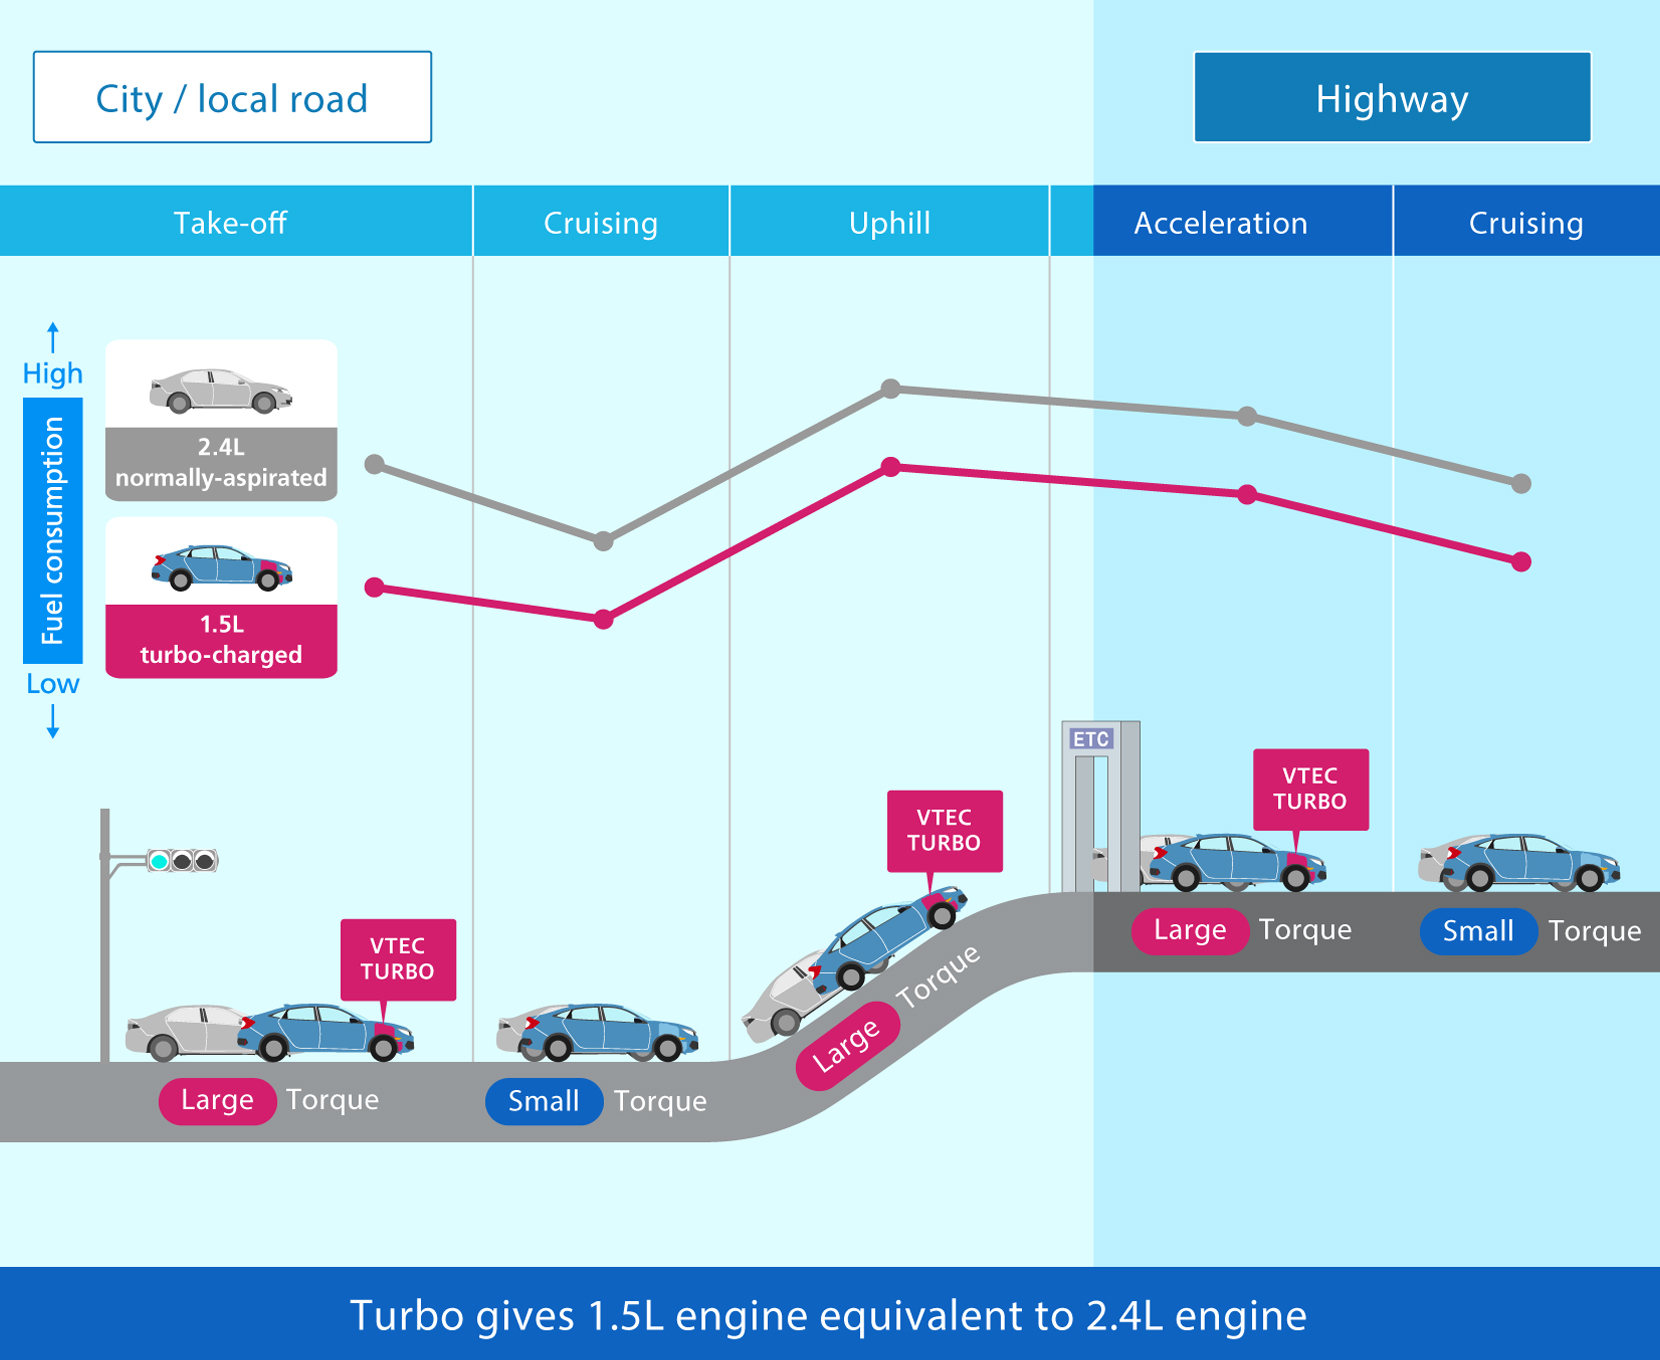 hight resolution of turbo gives 1 5l engine equivalent to 2 4l engine